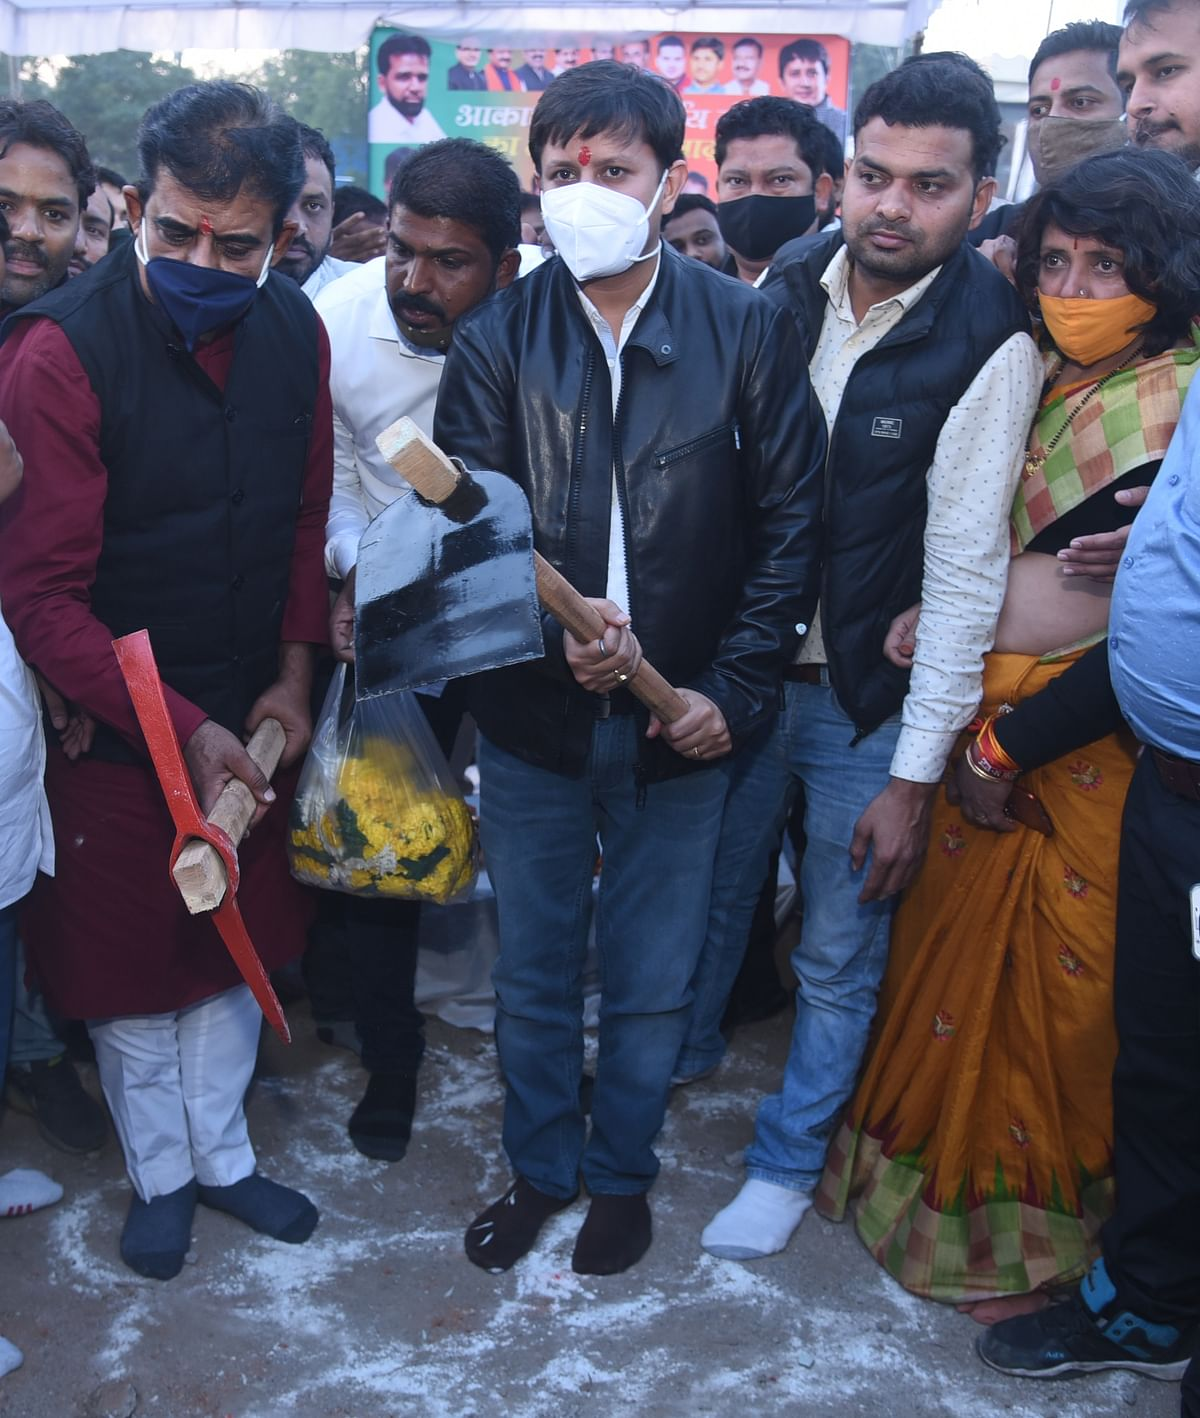 Indore: 'Jeevan Rekha' to be laid at outlay of Rs 24 crore